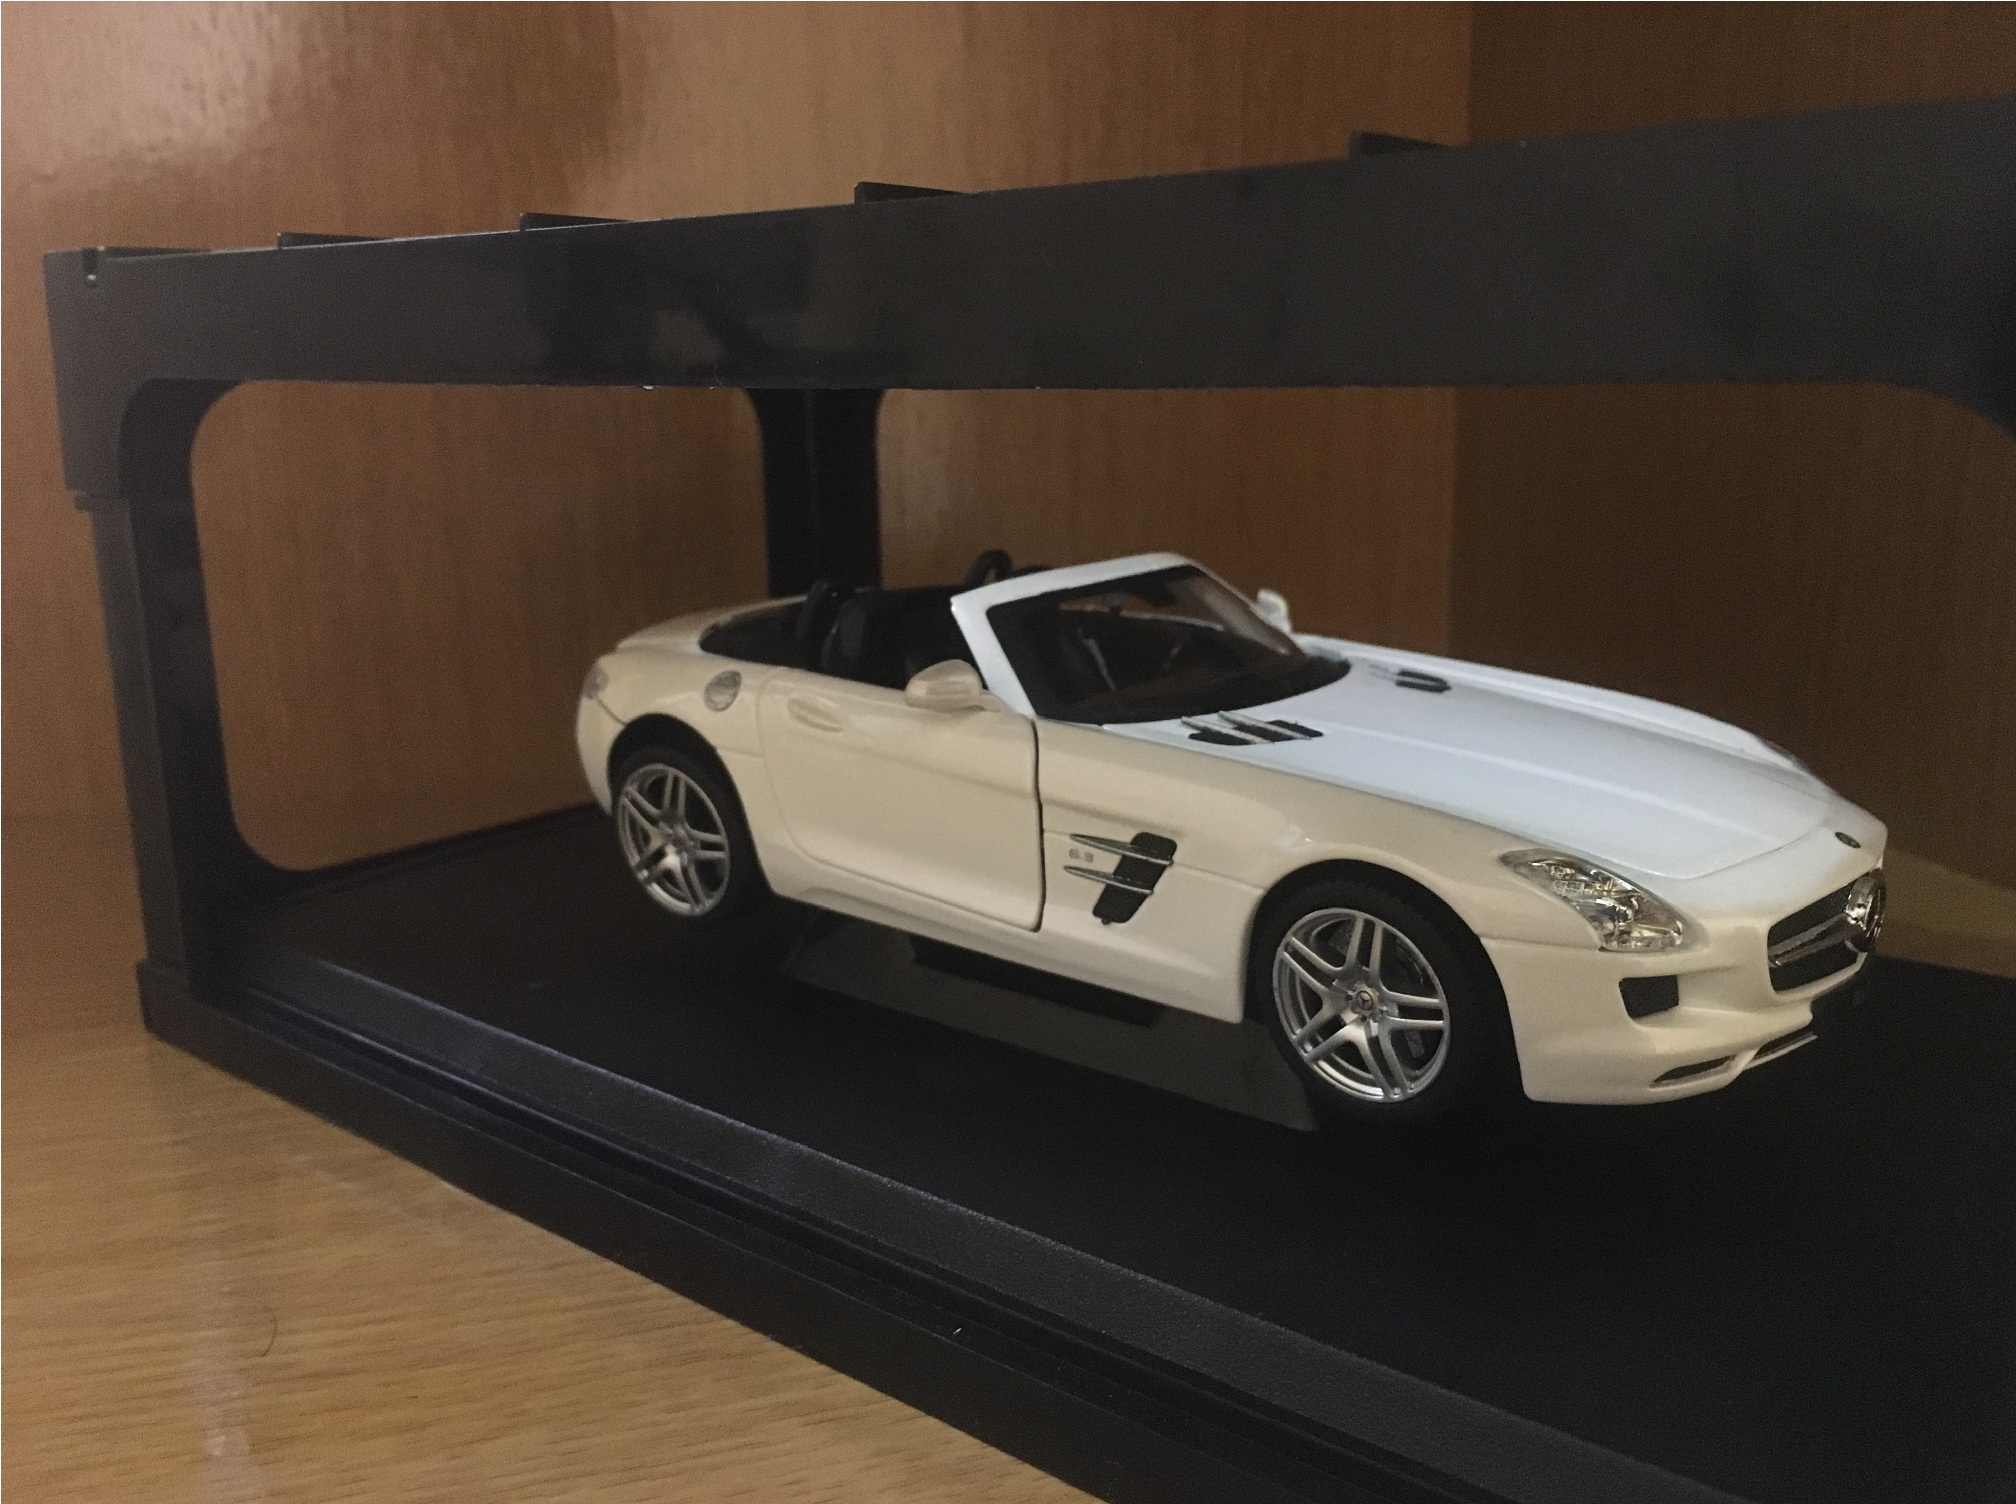 Cool Mercedes Benz Sls Amg Roadster Toy From Unioil